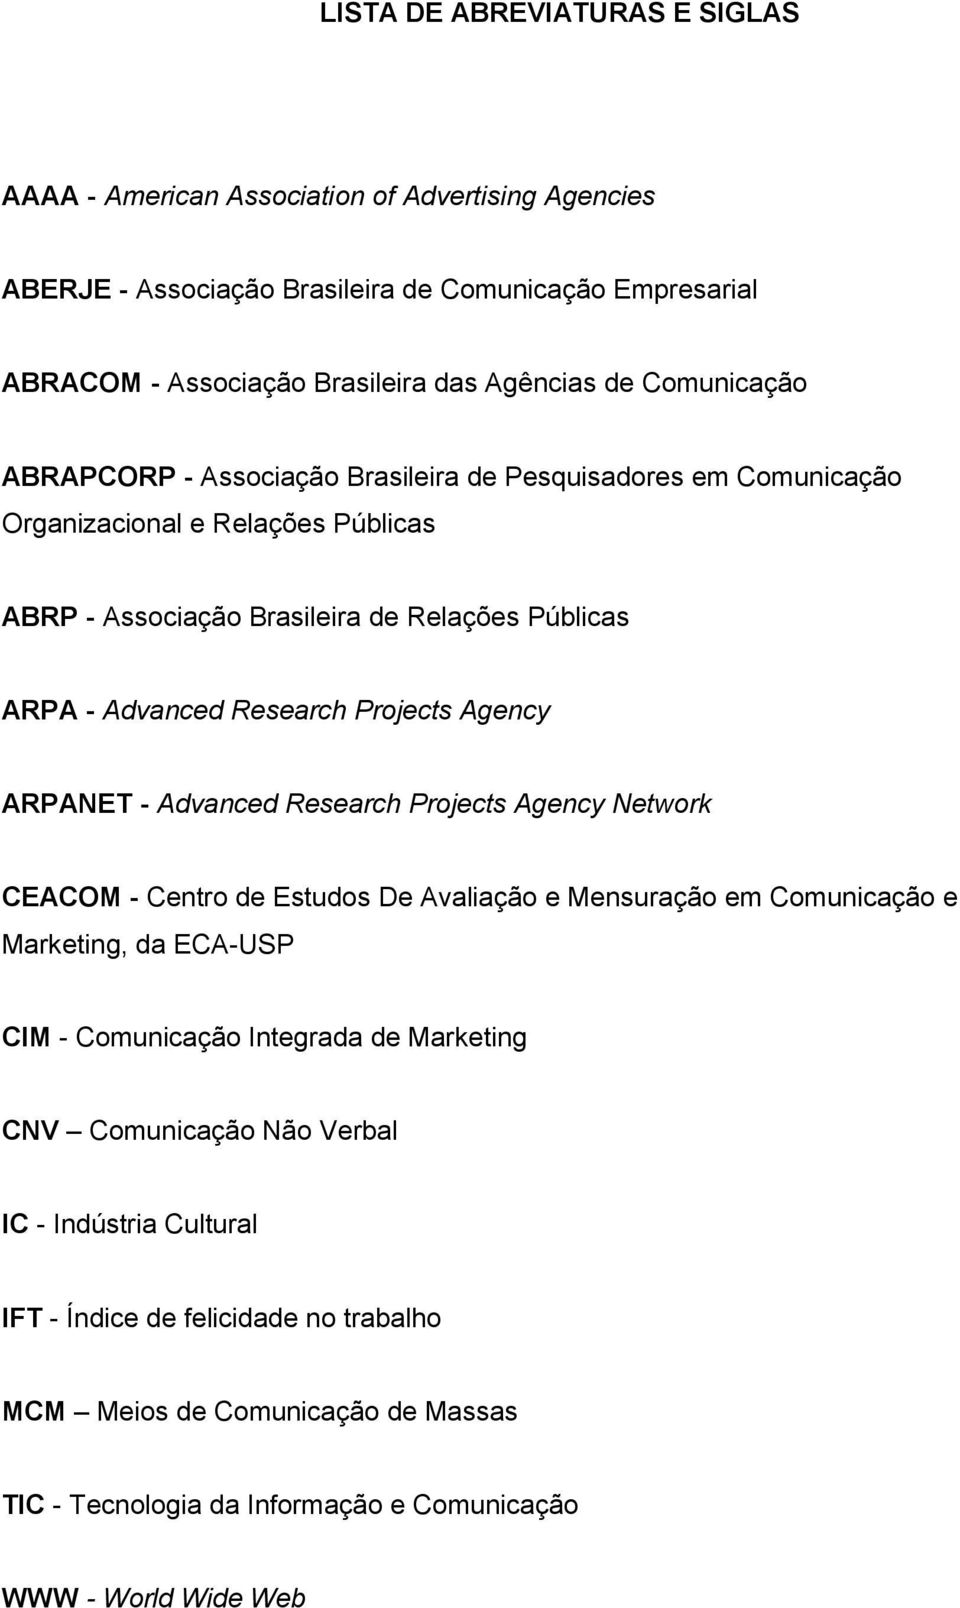 Projects Agency ARPANET - Advanced Research Projects Agency Network CEACOM - Centro de Estudos De Avaliação e Mensuração em Comunicação e Marketing, da ECA-USP CIM - Comunicação Integrada de